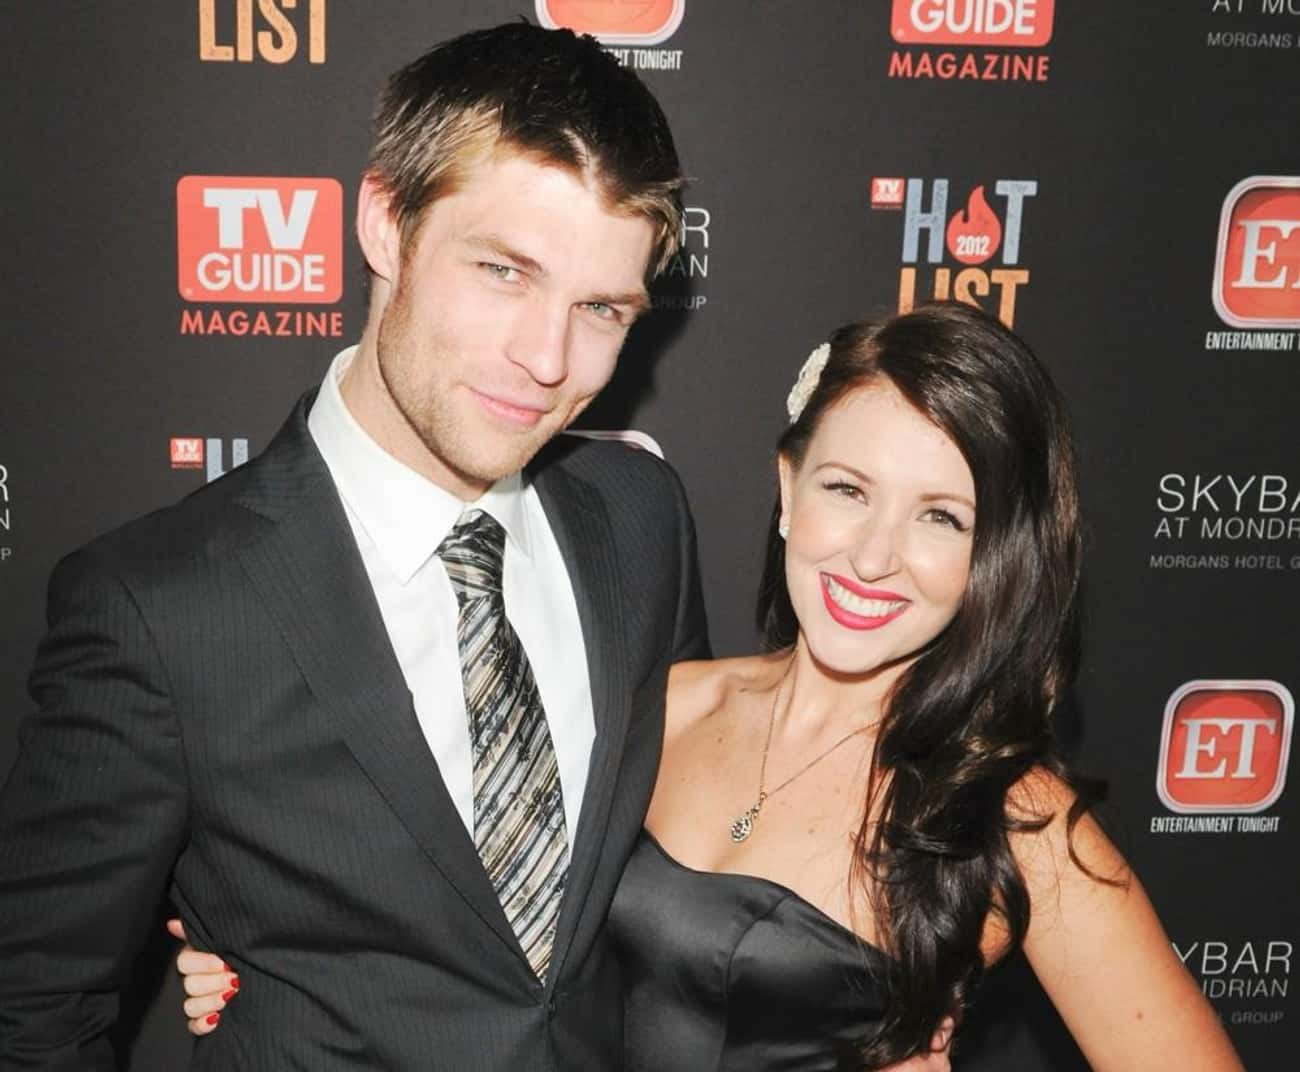 Liam McIntyre & Erin Hasan is listed (or ranked) 2 on the list The Most Elaborate Celebrity Proposals